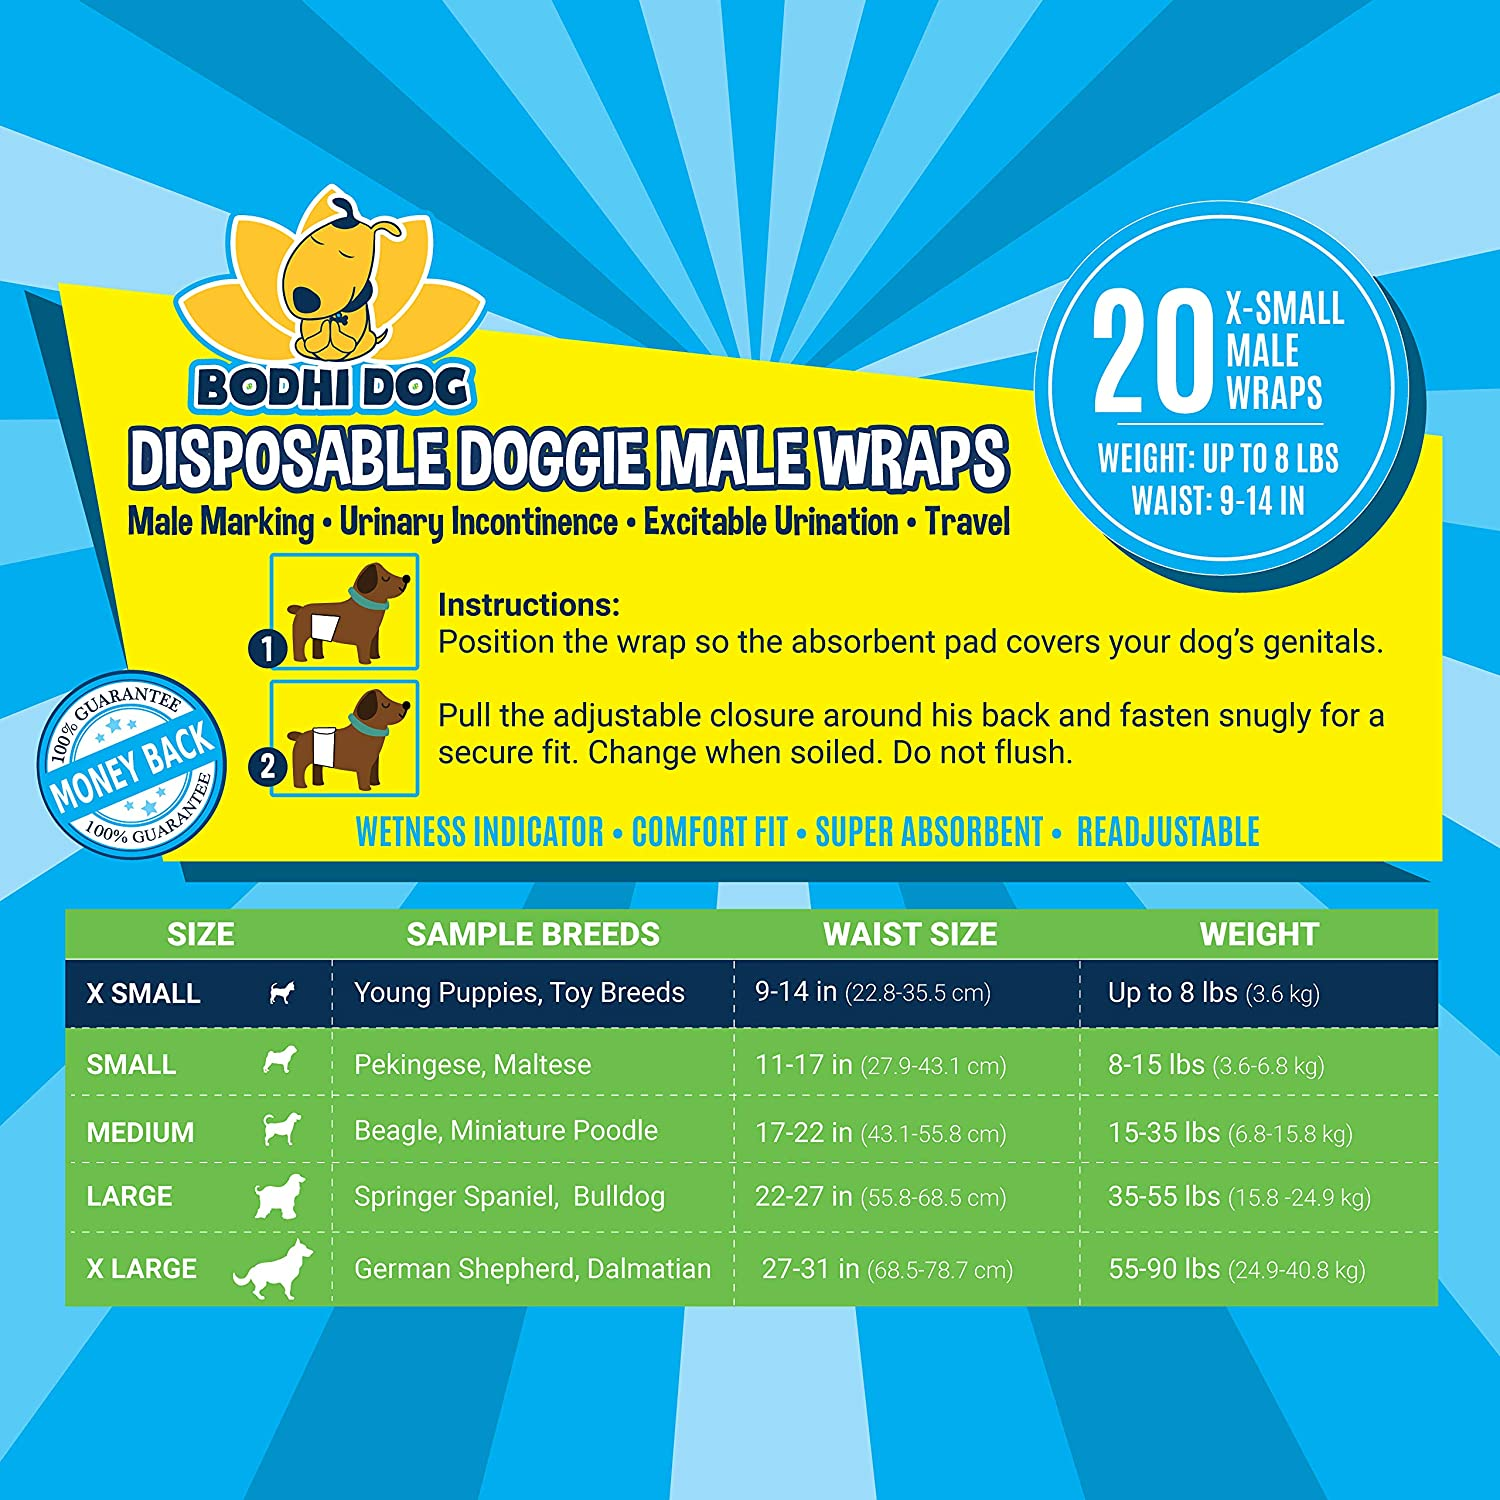 Disposable Dog Male Wraps 20 Premium Quality Adjustable Pet Diapers with Moisture Control and Wetness Indicator 20 Count Extra-Small Size